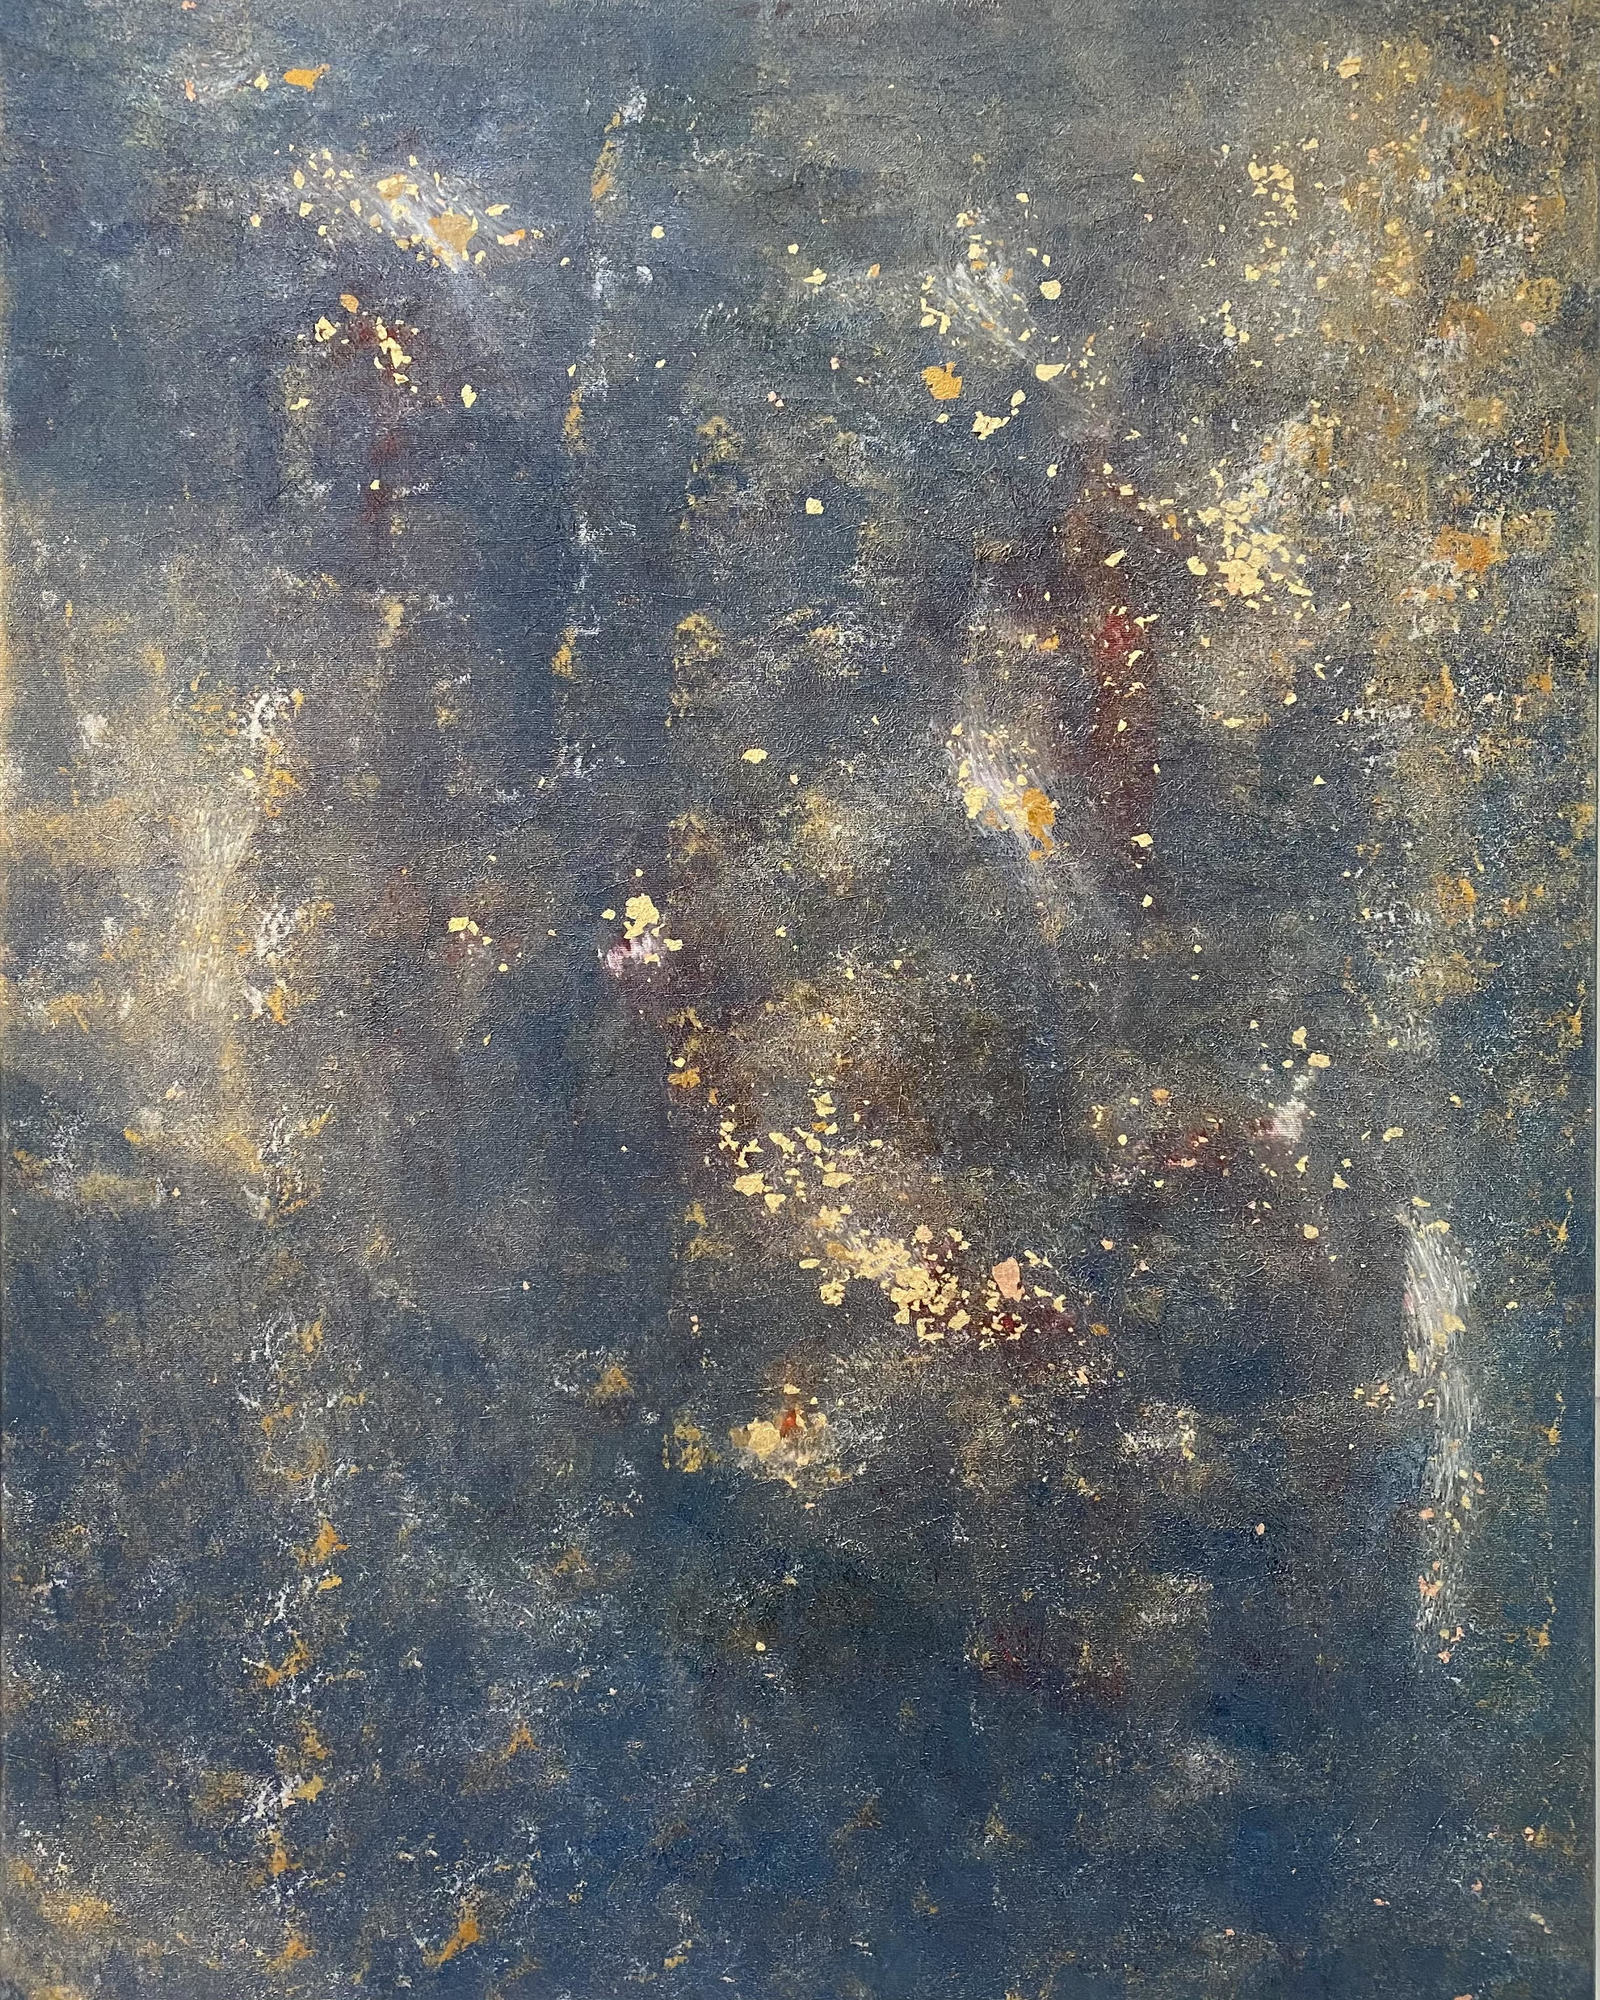 Space, 70x100cm, oil, gold leaves on canvas